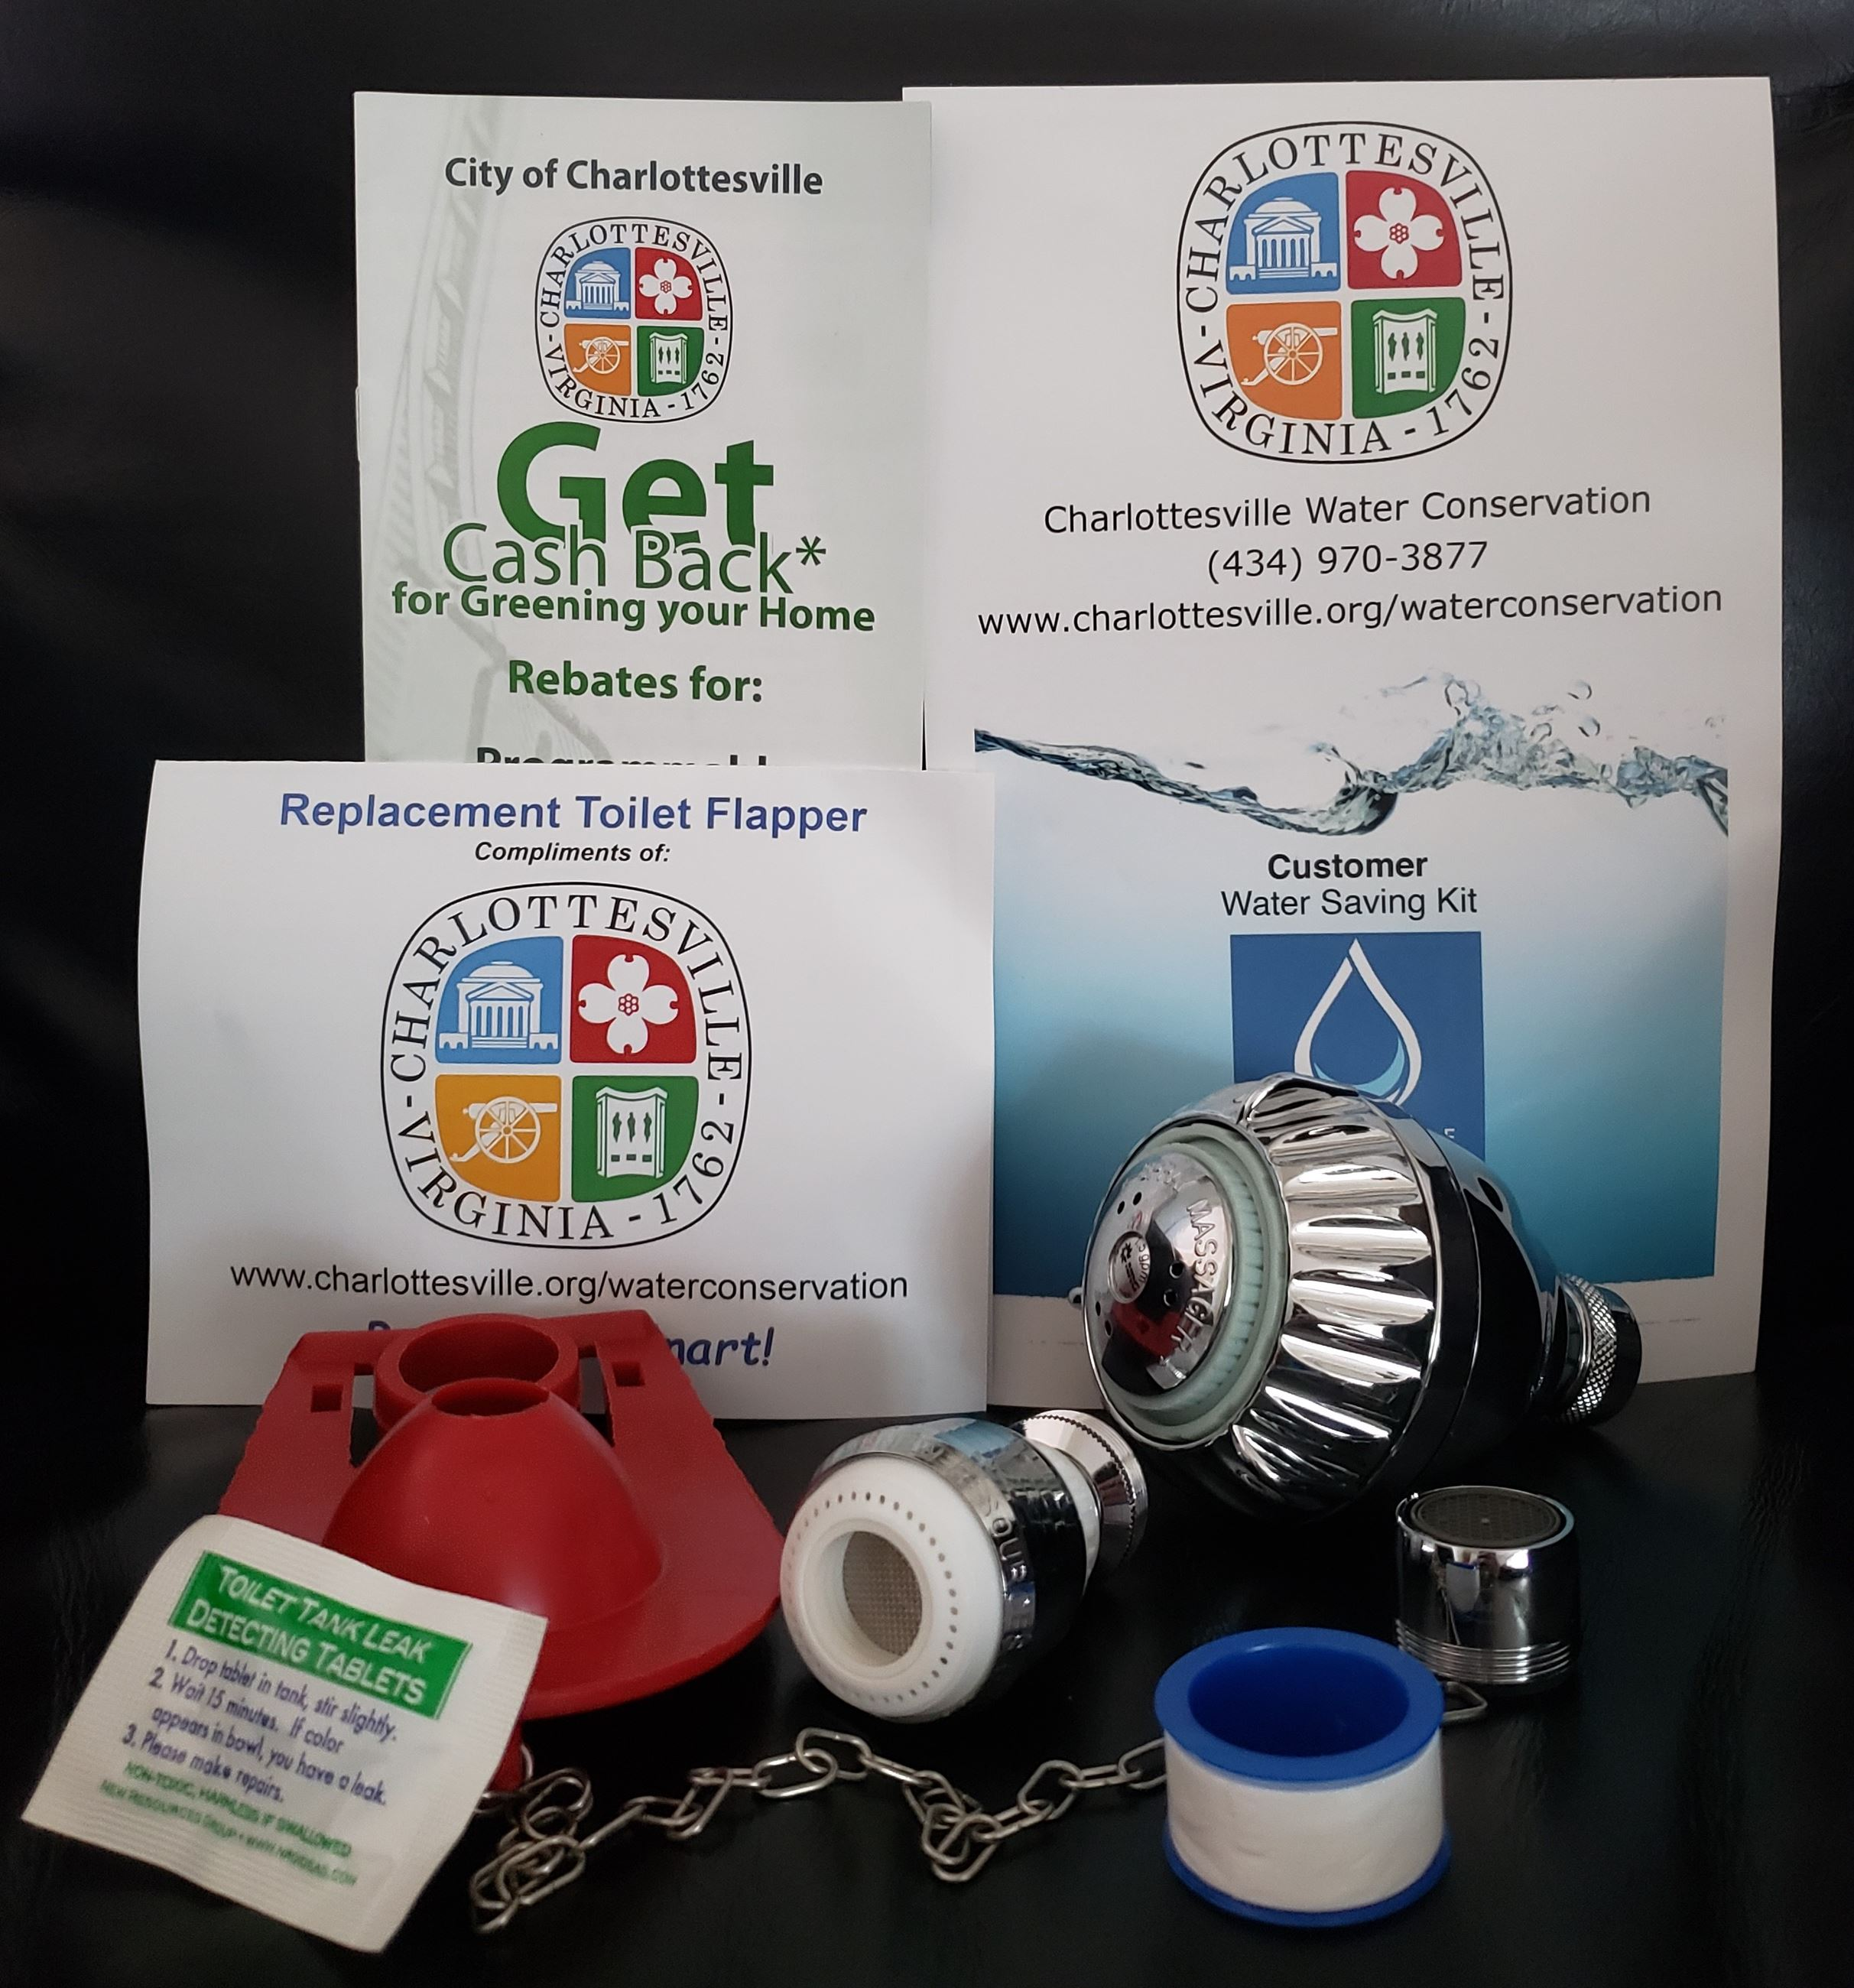 Water Conservation Kit and Toilet Flapper Image